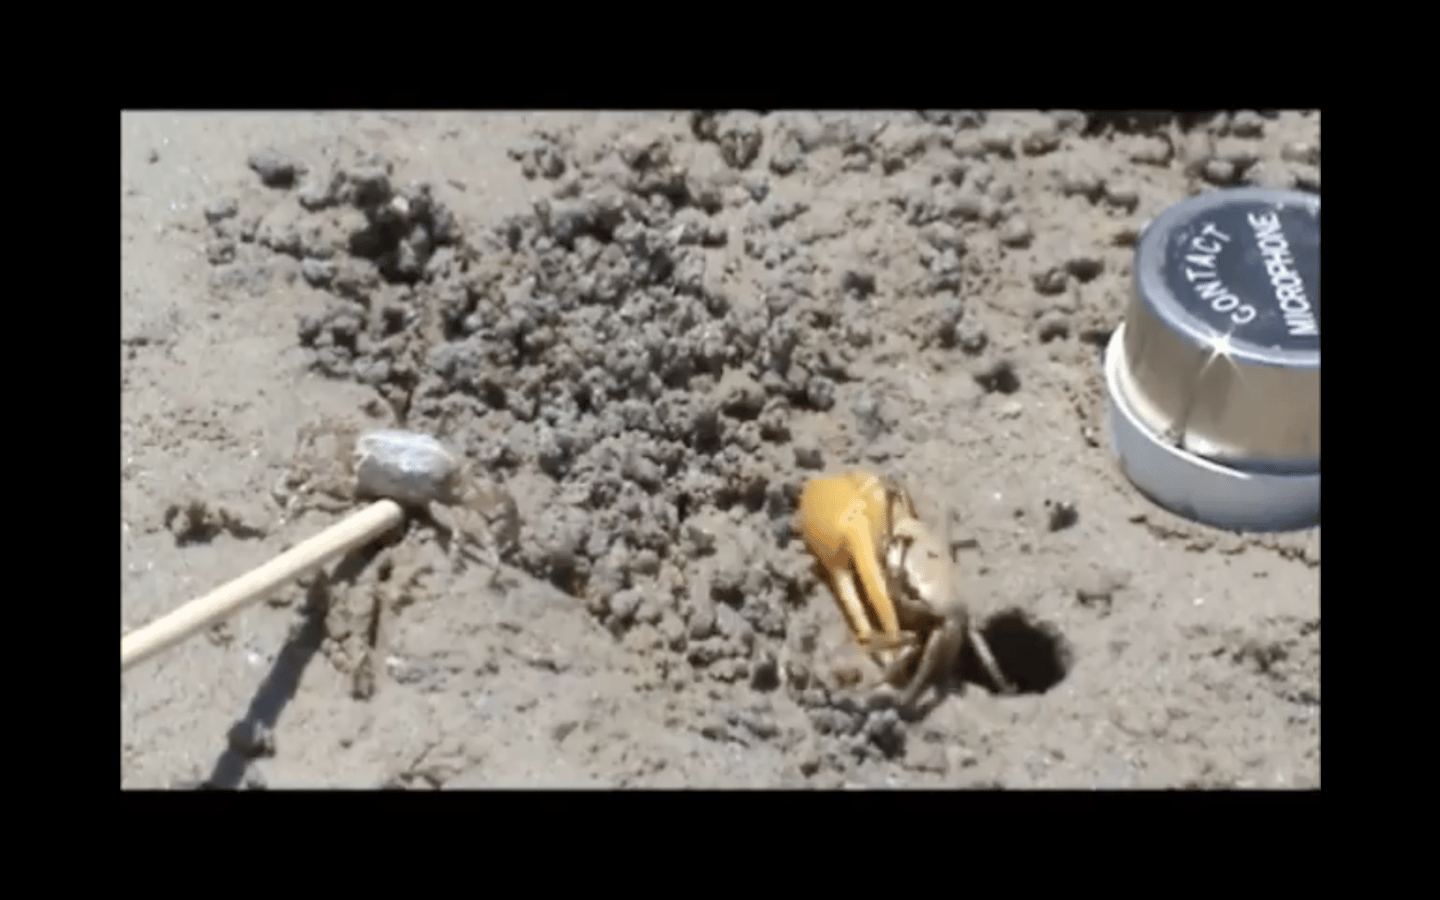 The frequency of the fiddler crab's drumming had a positive relationship with the size of its burrow